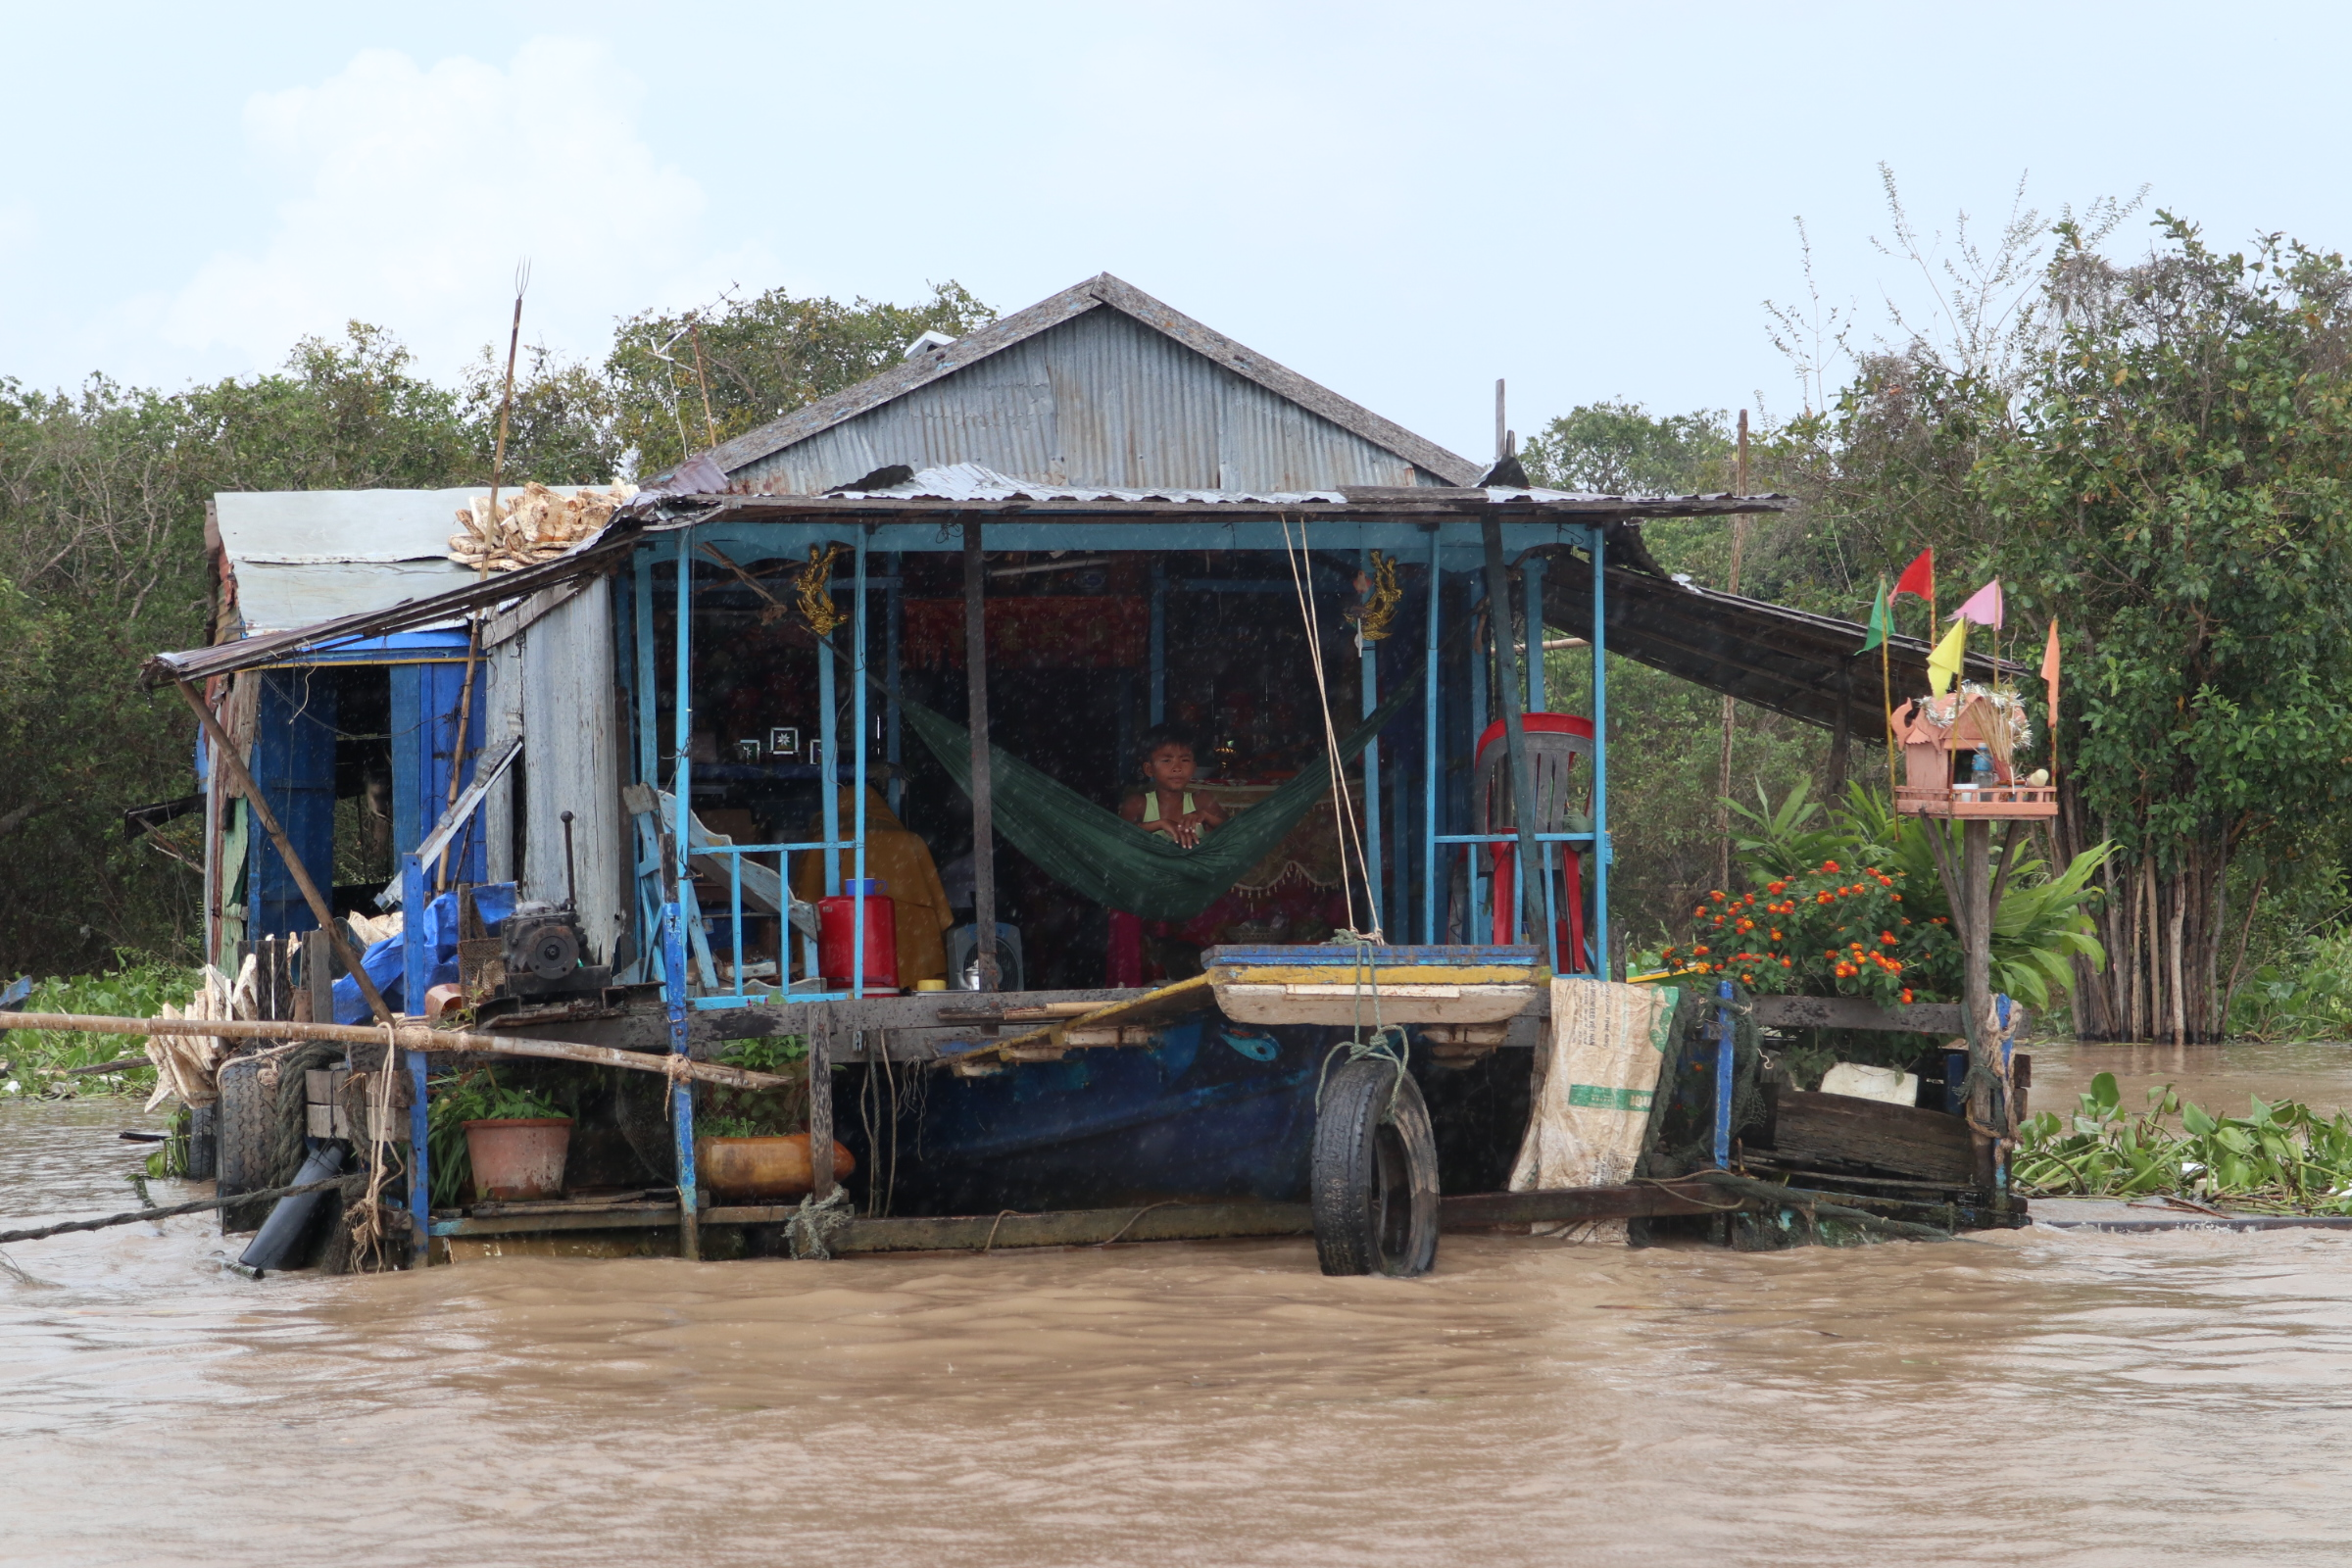 Cambodian side Trip – floating village